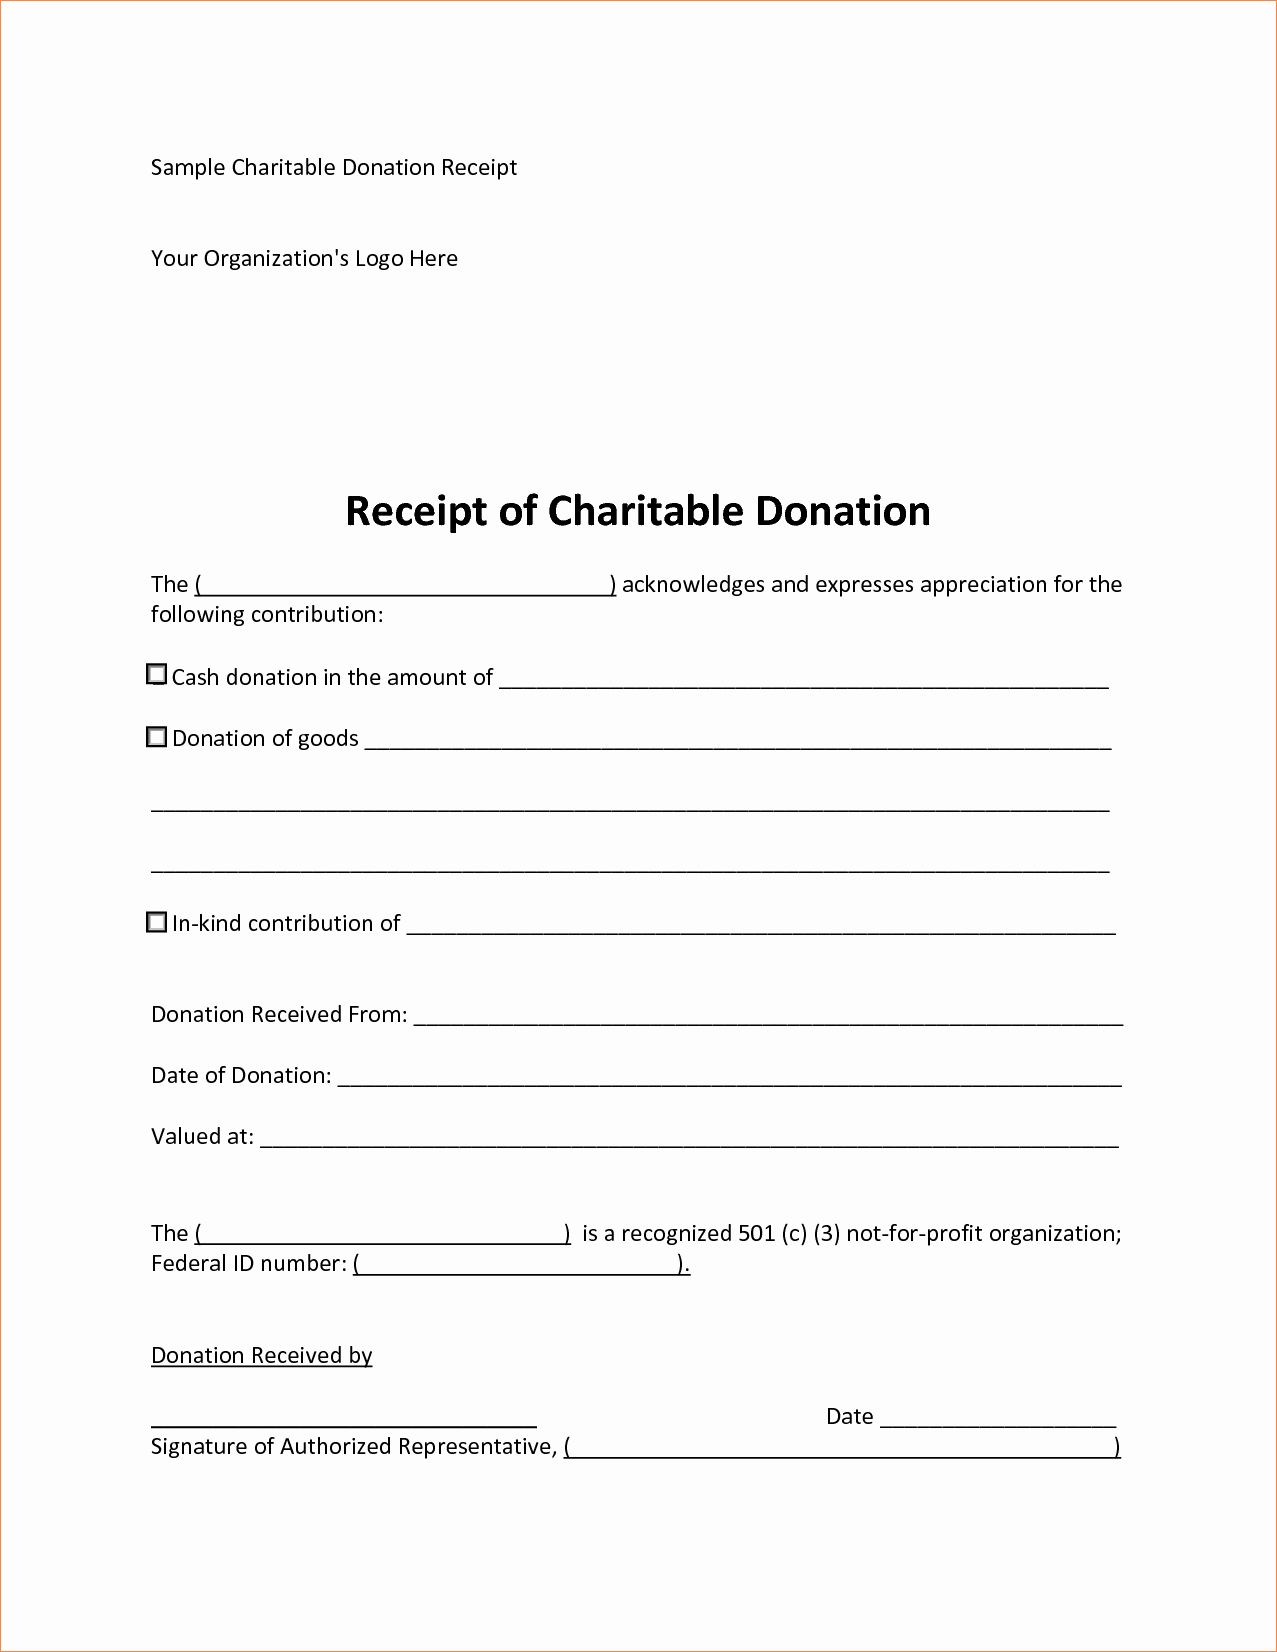 Charitable Contribution Receipt Template Best Of 5 Sample Donation Receipt